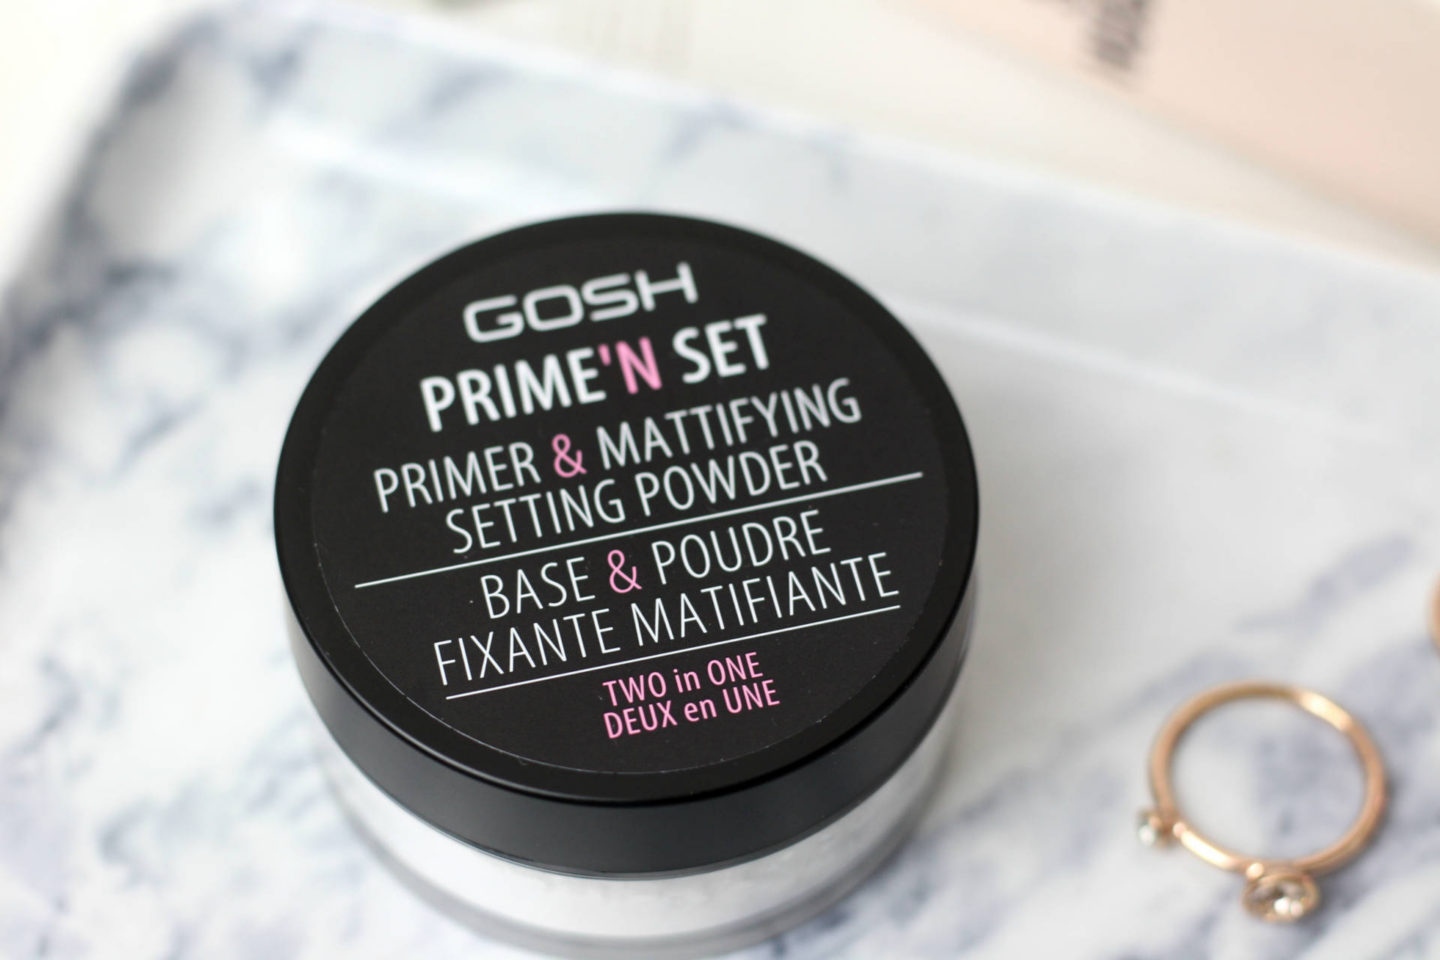 'Set Primer and Mattifying Setting Powder